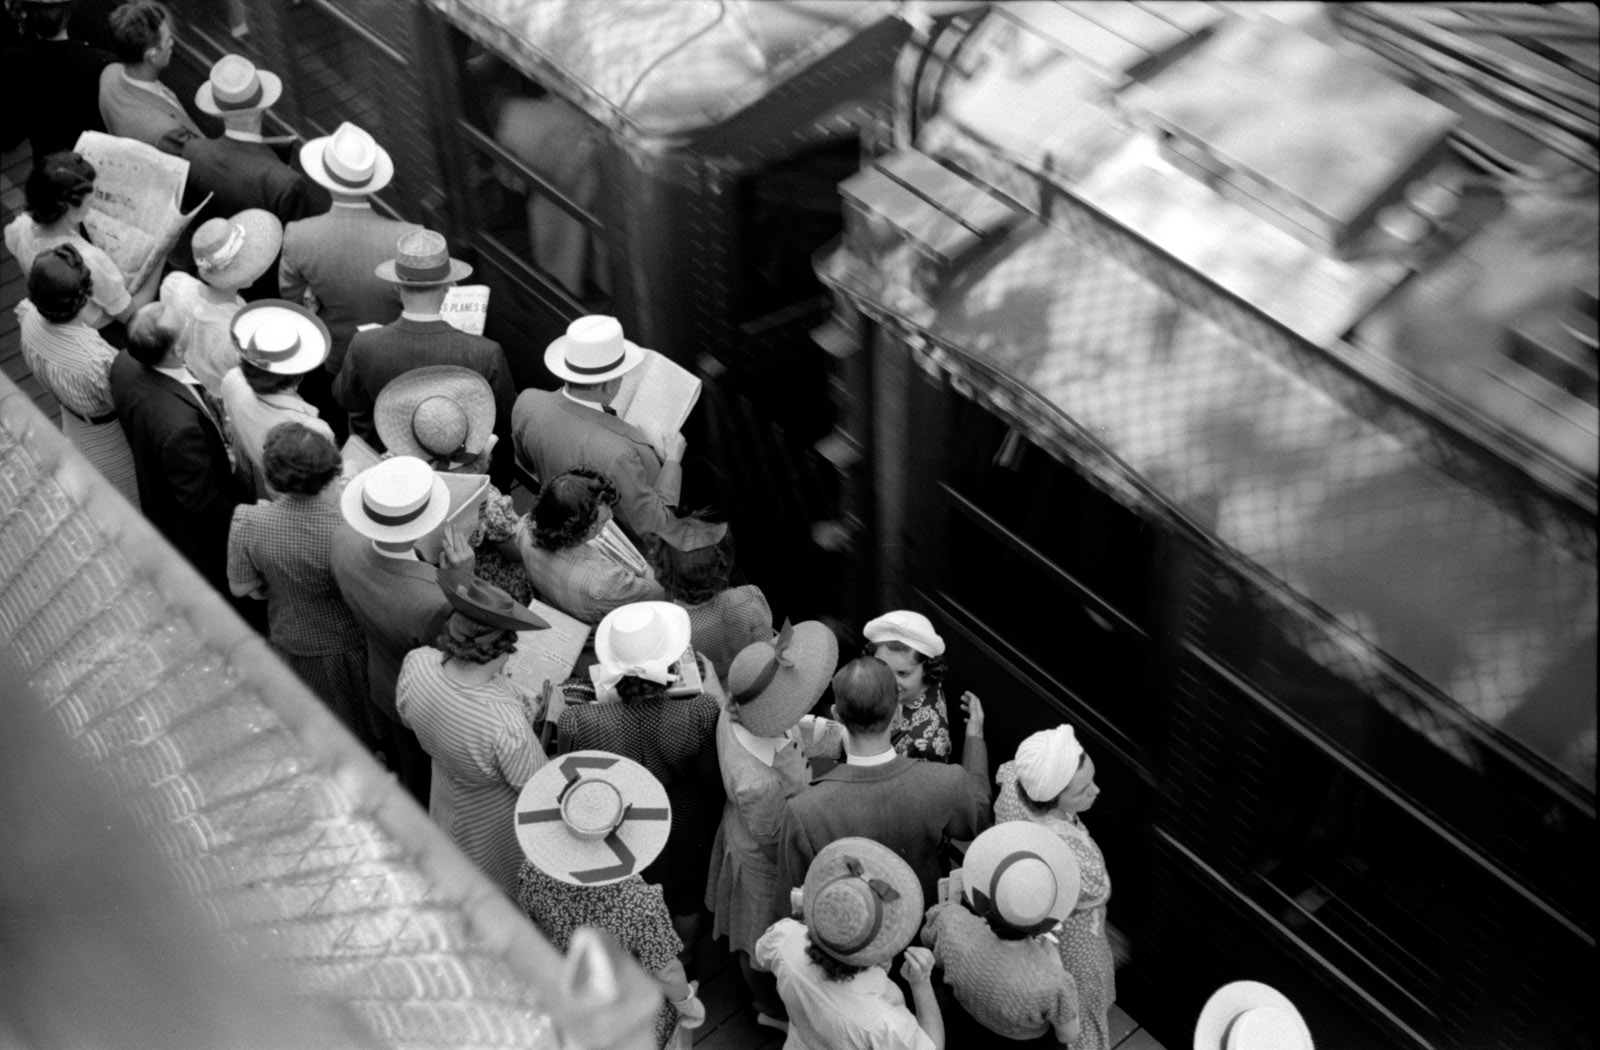 Commuters waiting for trains, Chicago, July 1941